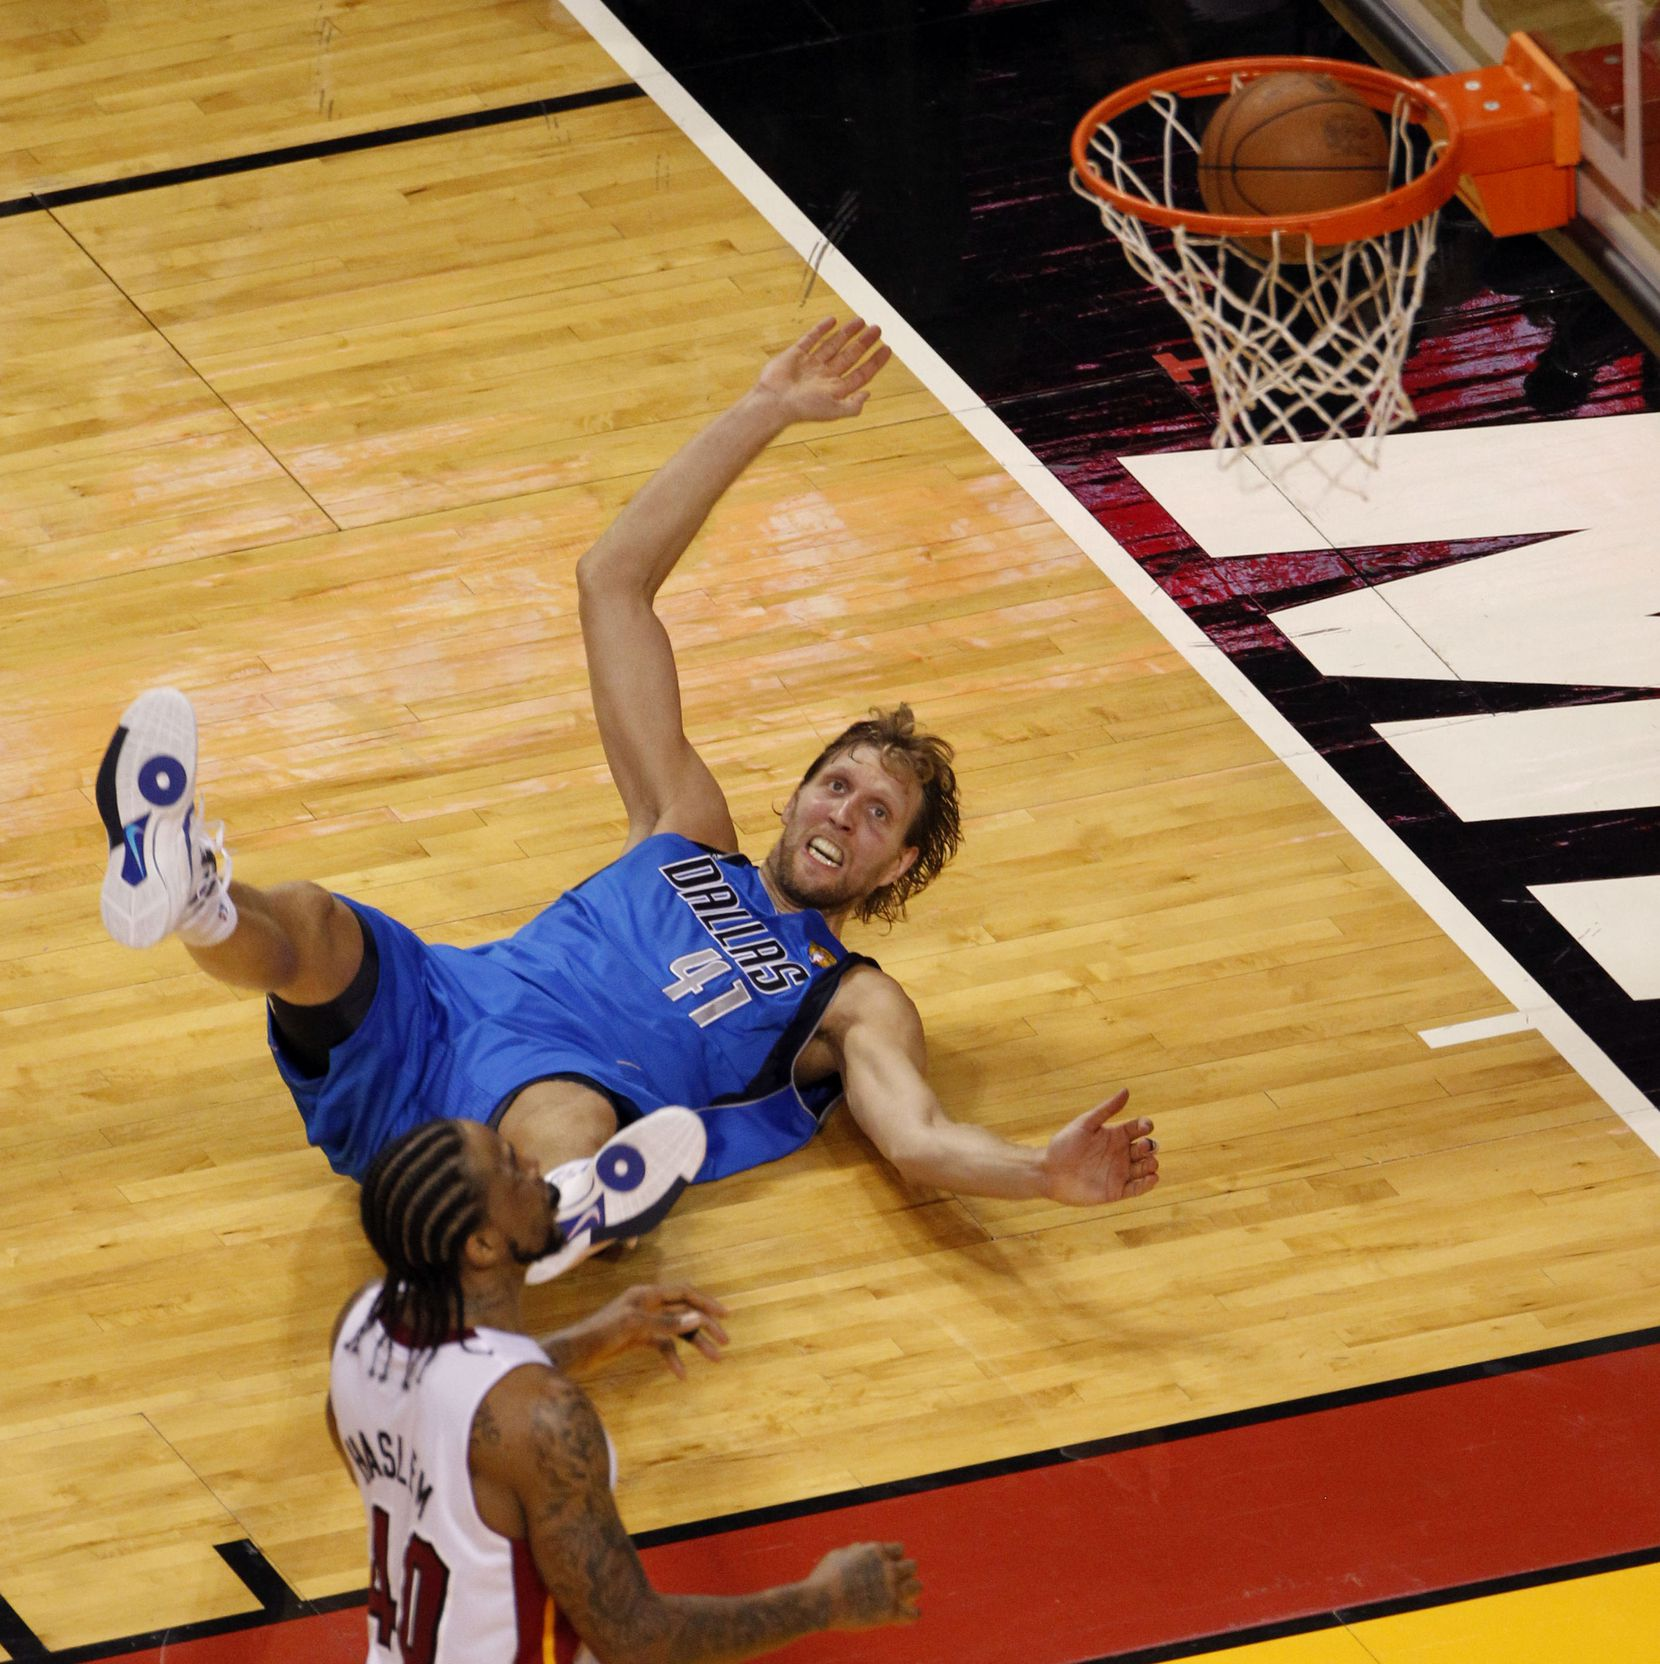 Dallas Mavericks power forward Dirk Nowitzki (41) watches as his shot falls through the basket on a shot defended by Miami Heat power forward Udonis Haslem (40) during the fourth quarter of game six of the NBA Finals between the Miami Heat and the Dallas Mavericks at the American Airlines Arena in Miami, Florida, June 12, 2011. Mavs win 105-95(Vernon Bryant/The Dallas Morning News) 06142011xMAVSspecial